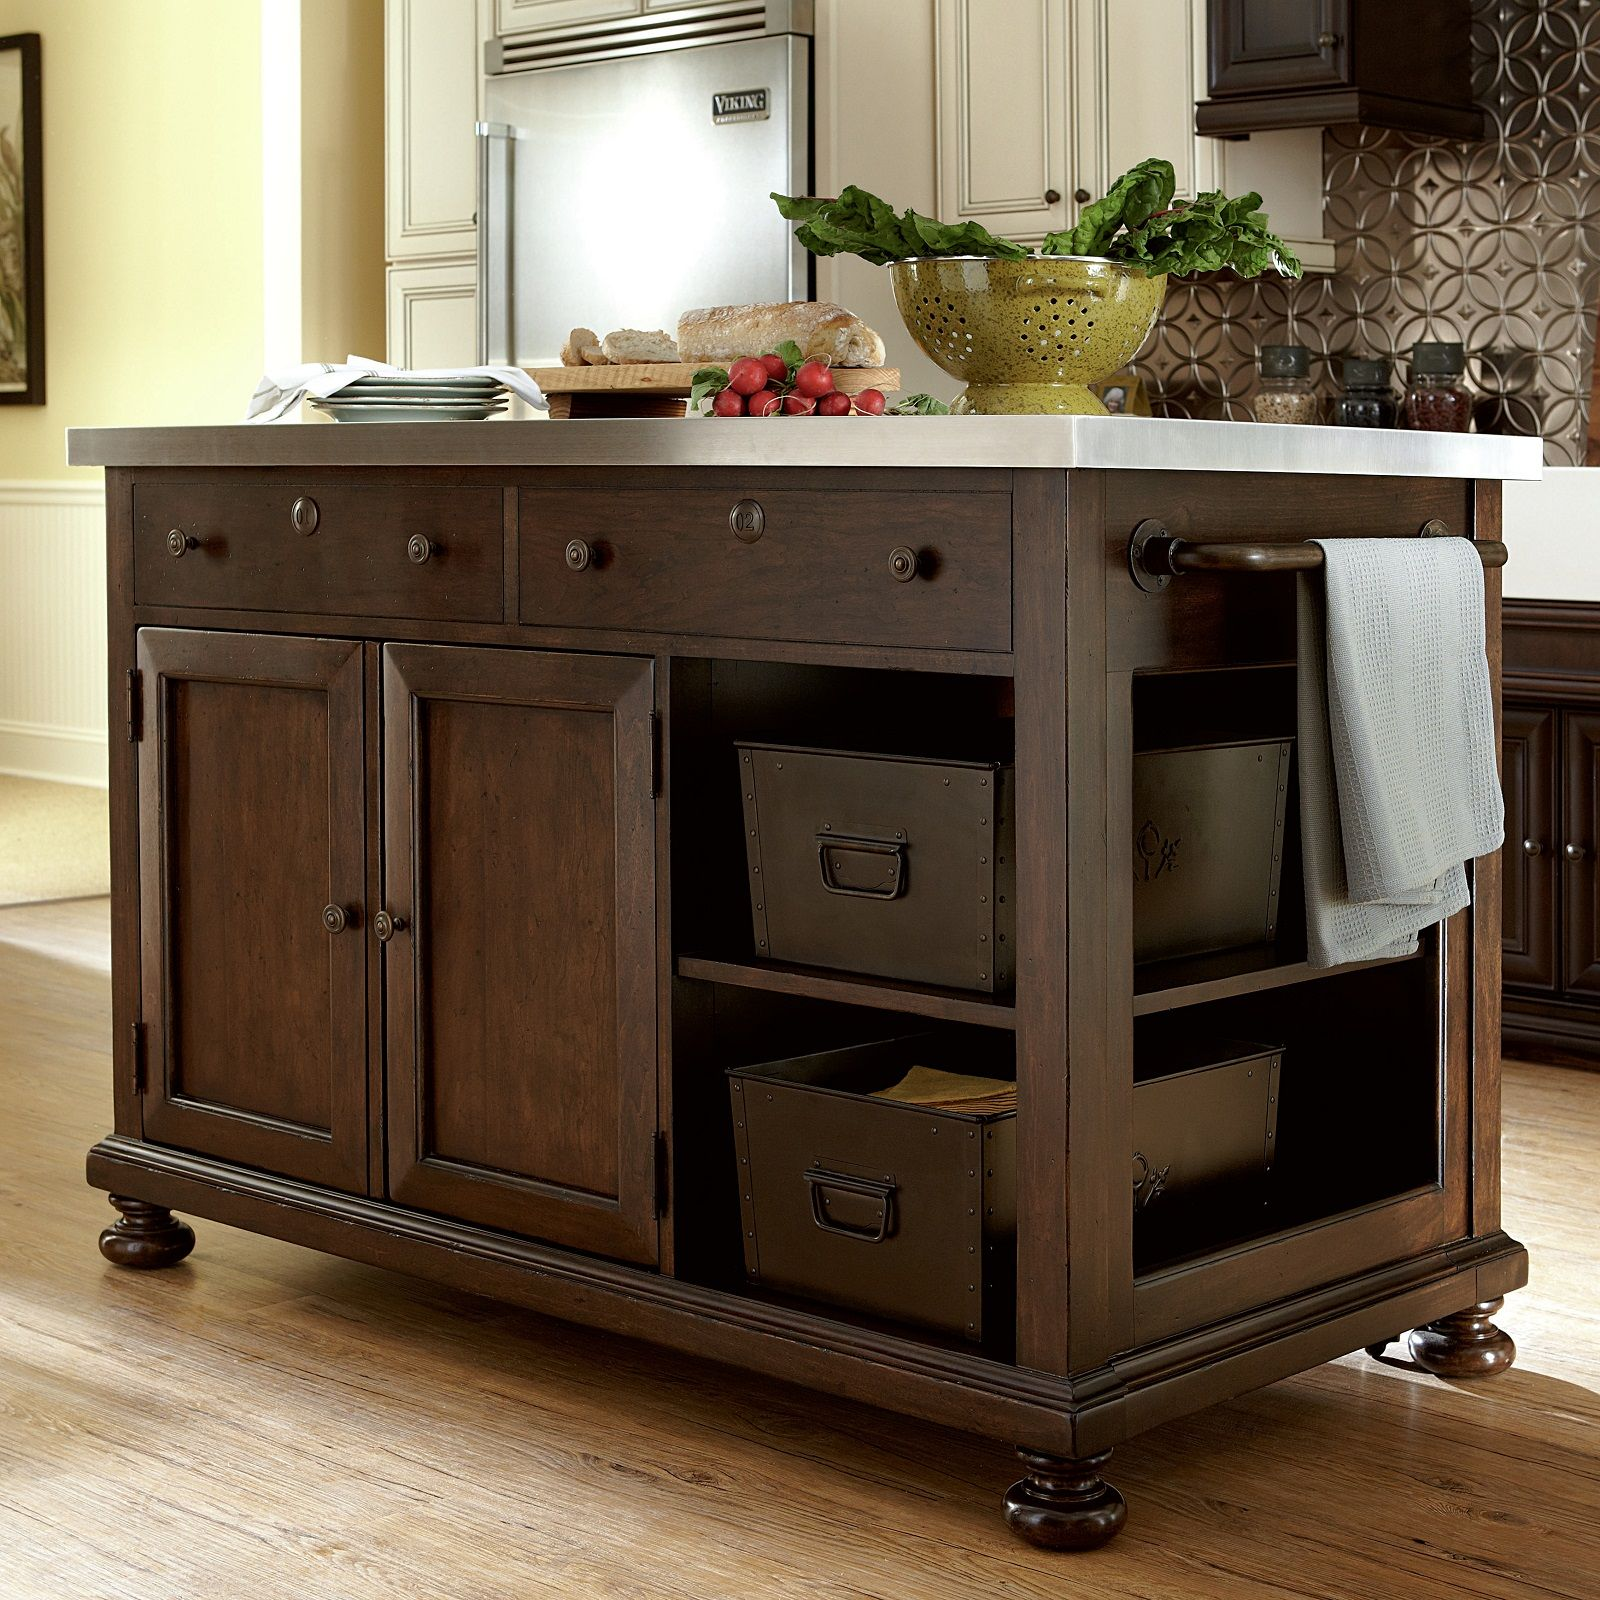 Best 15 Amazing Movable Kitchen Island Designs And Ideas 400 x 300